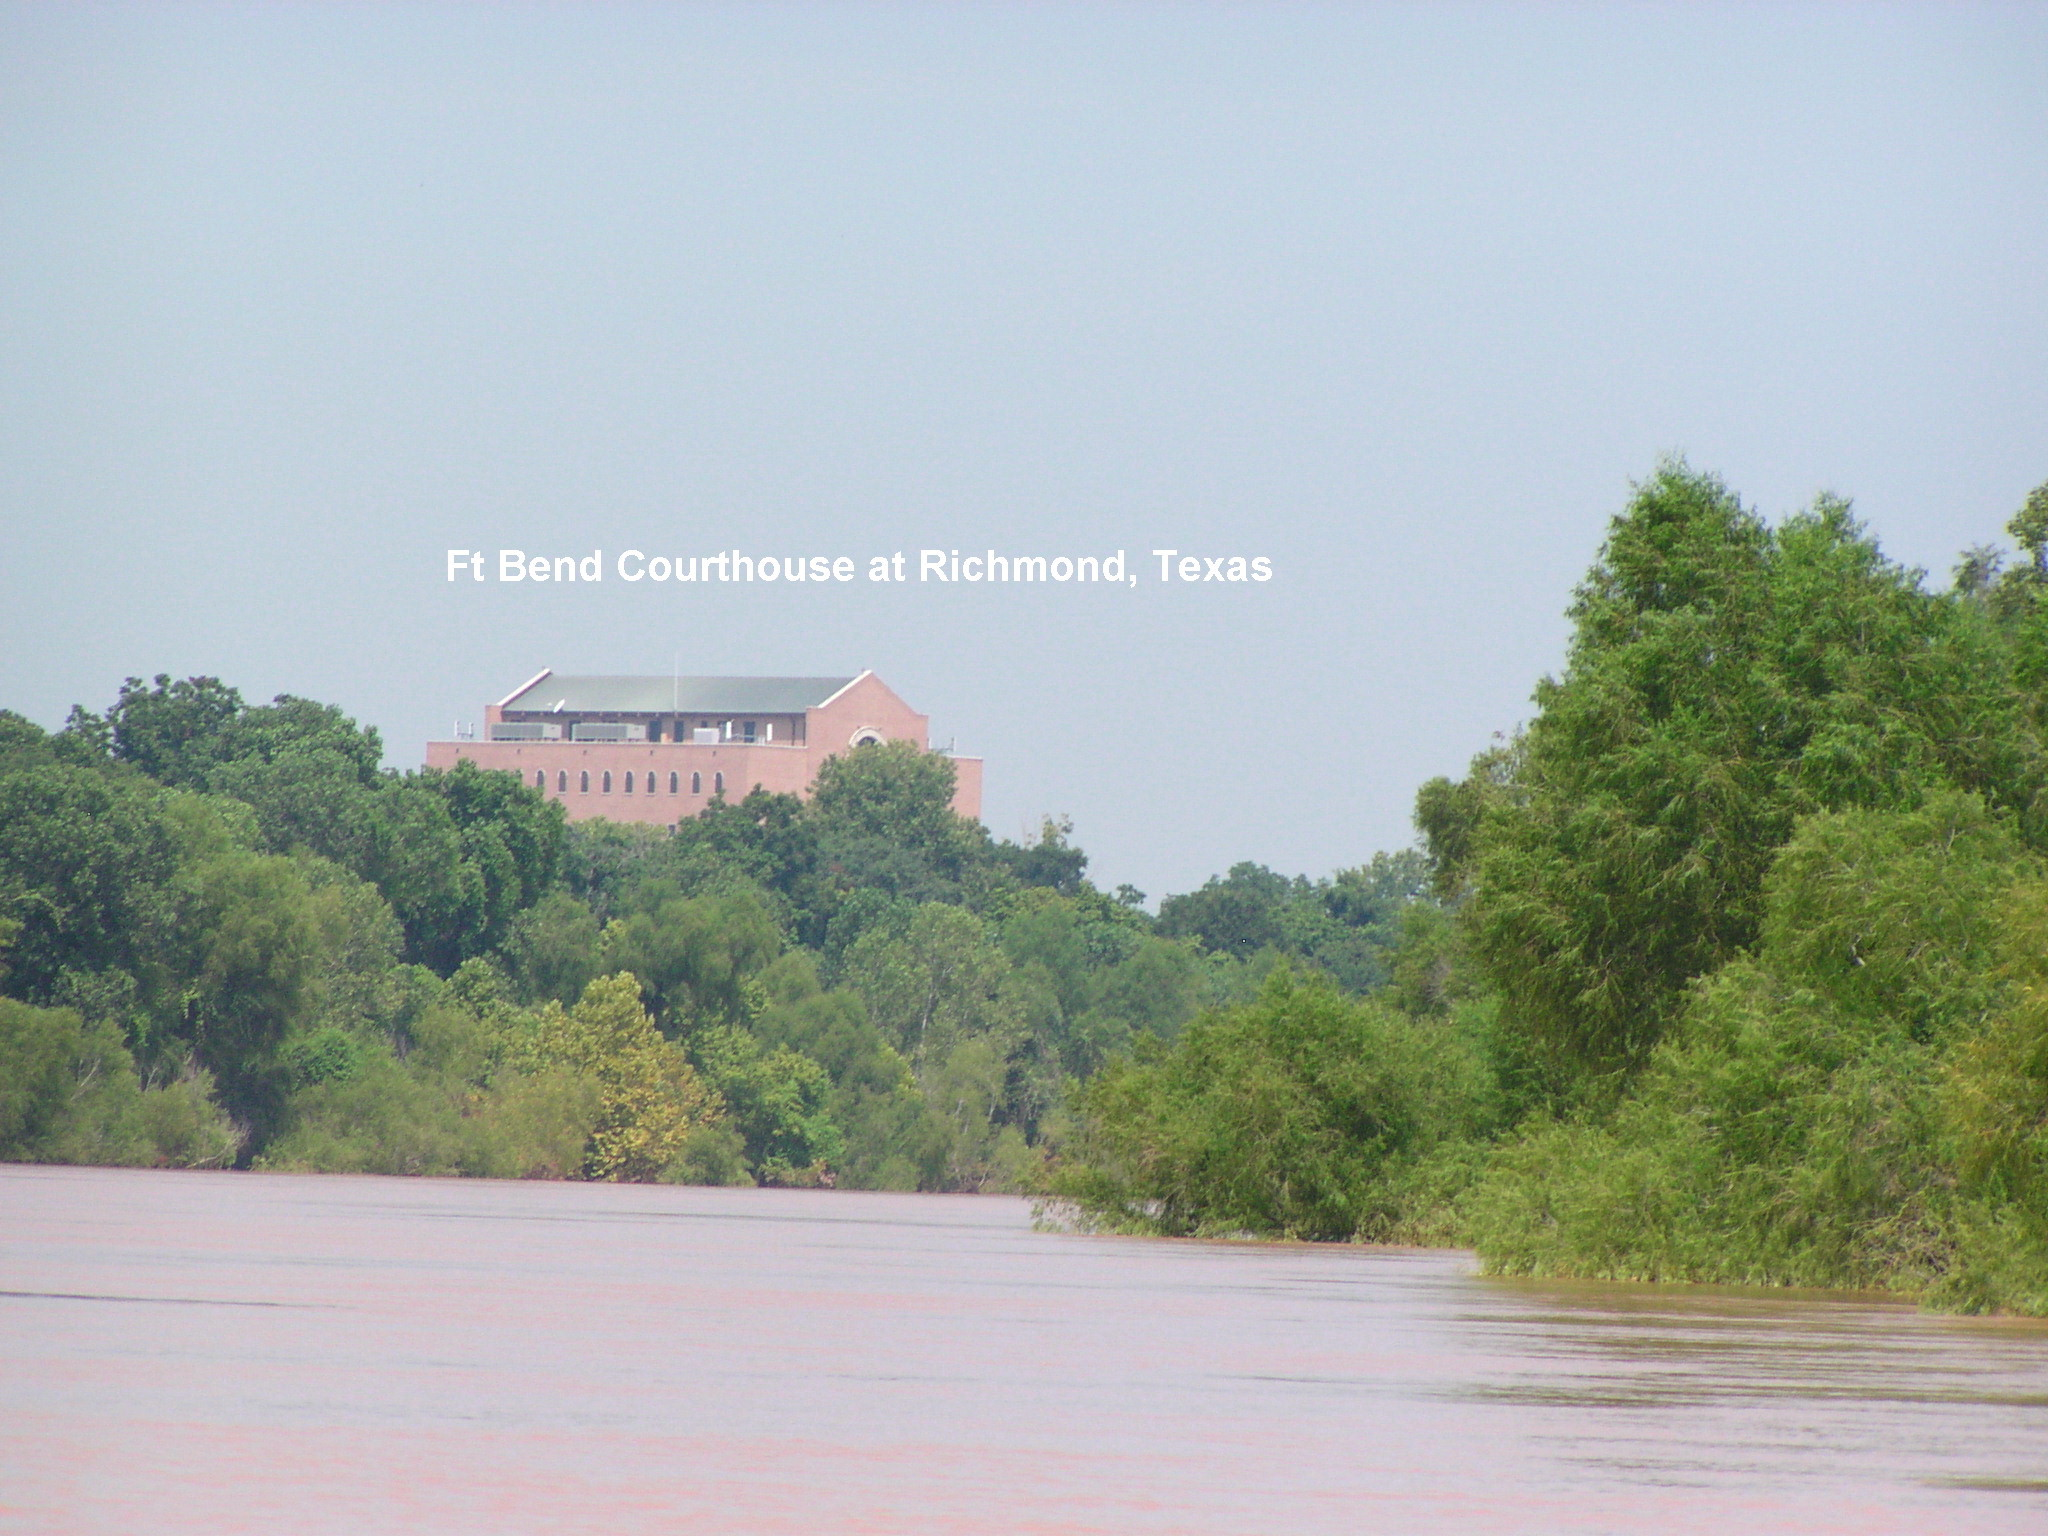 The new court house at Richmond. This is about 25 miles upstream from Miller Rd.